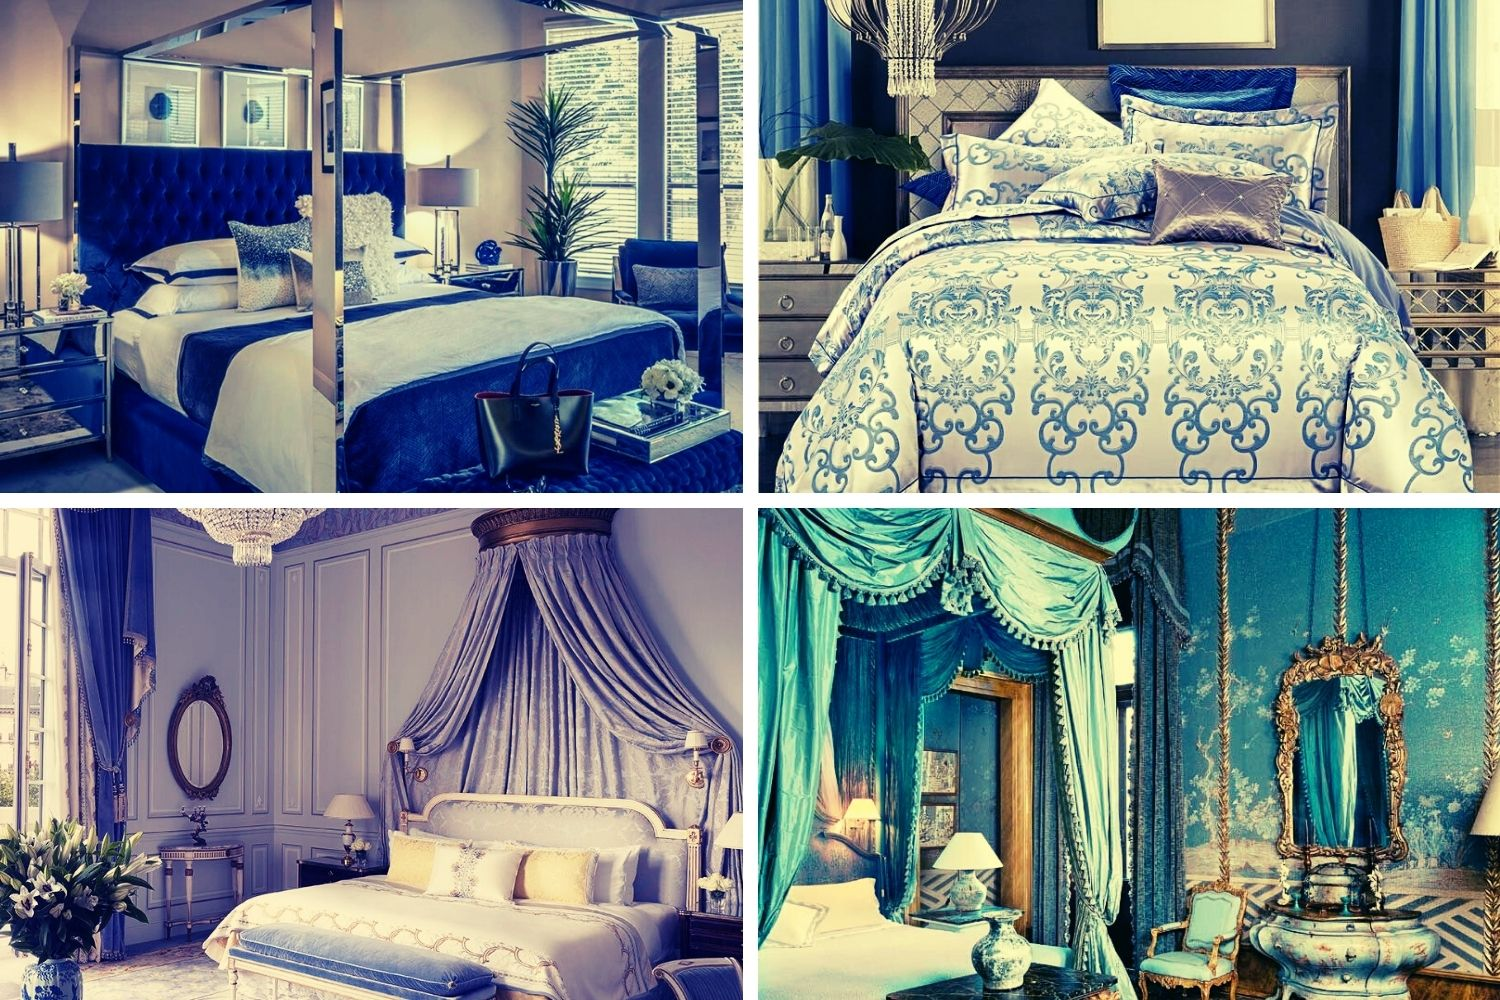 45 World's Best Royal Bedroom Ideas | Luxurious Designs